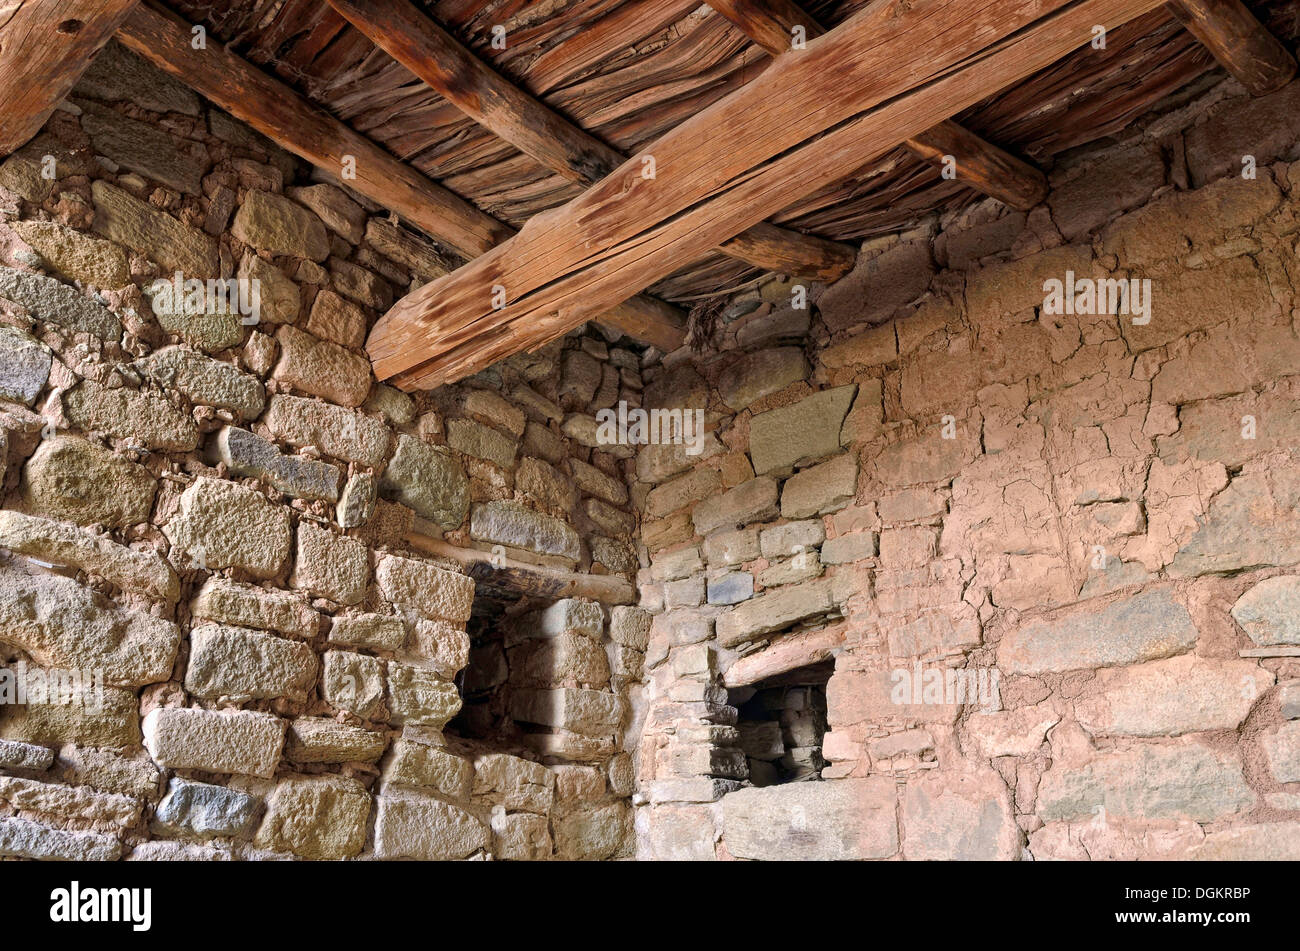 Walls and ceiling, detail, historic Anasazi settlement, Aztec Ruins National Monument, Aztec, New Mexico, USA - Stock Image